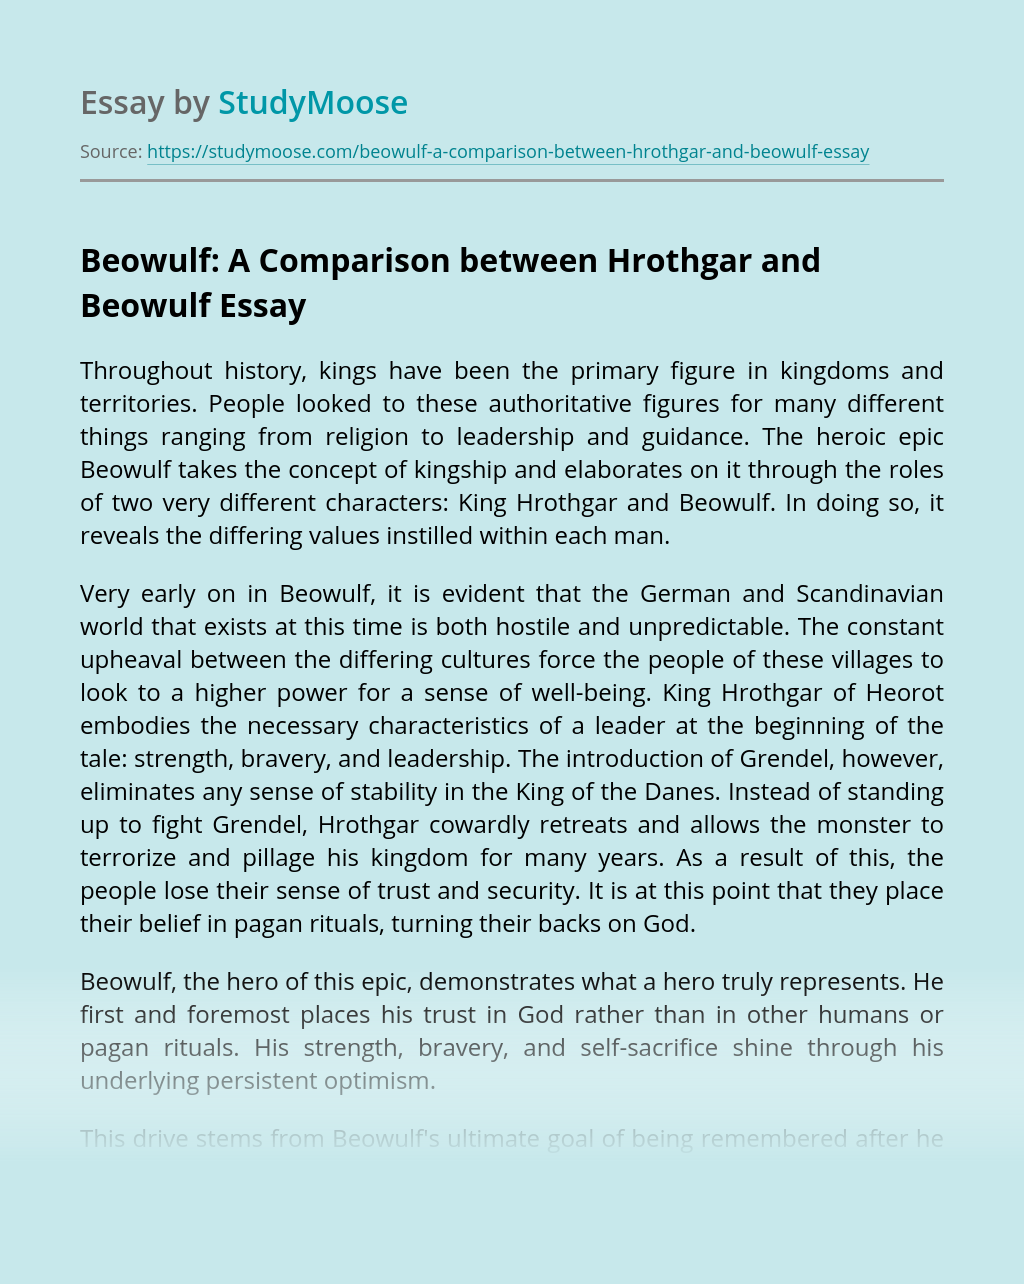 Beowulf: A Comparison between Hrothgar and Beowulf